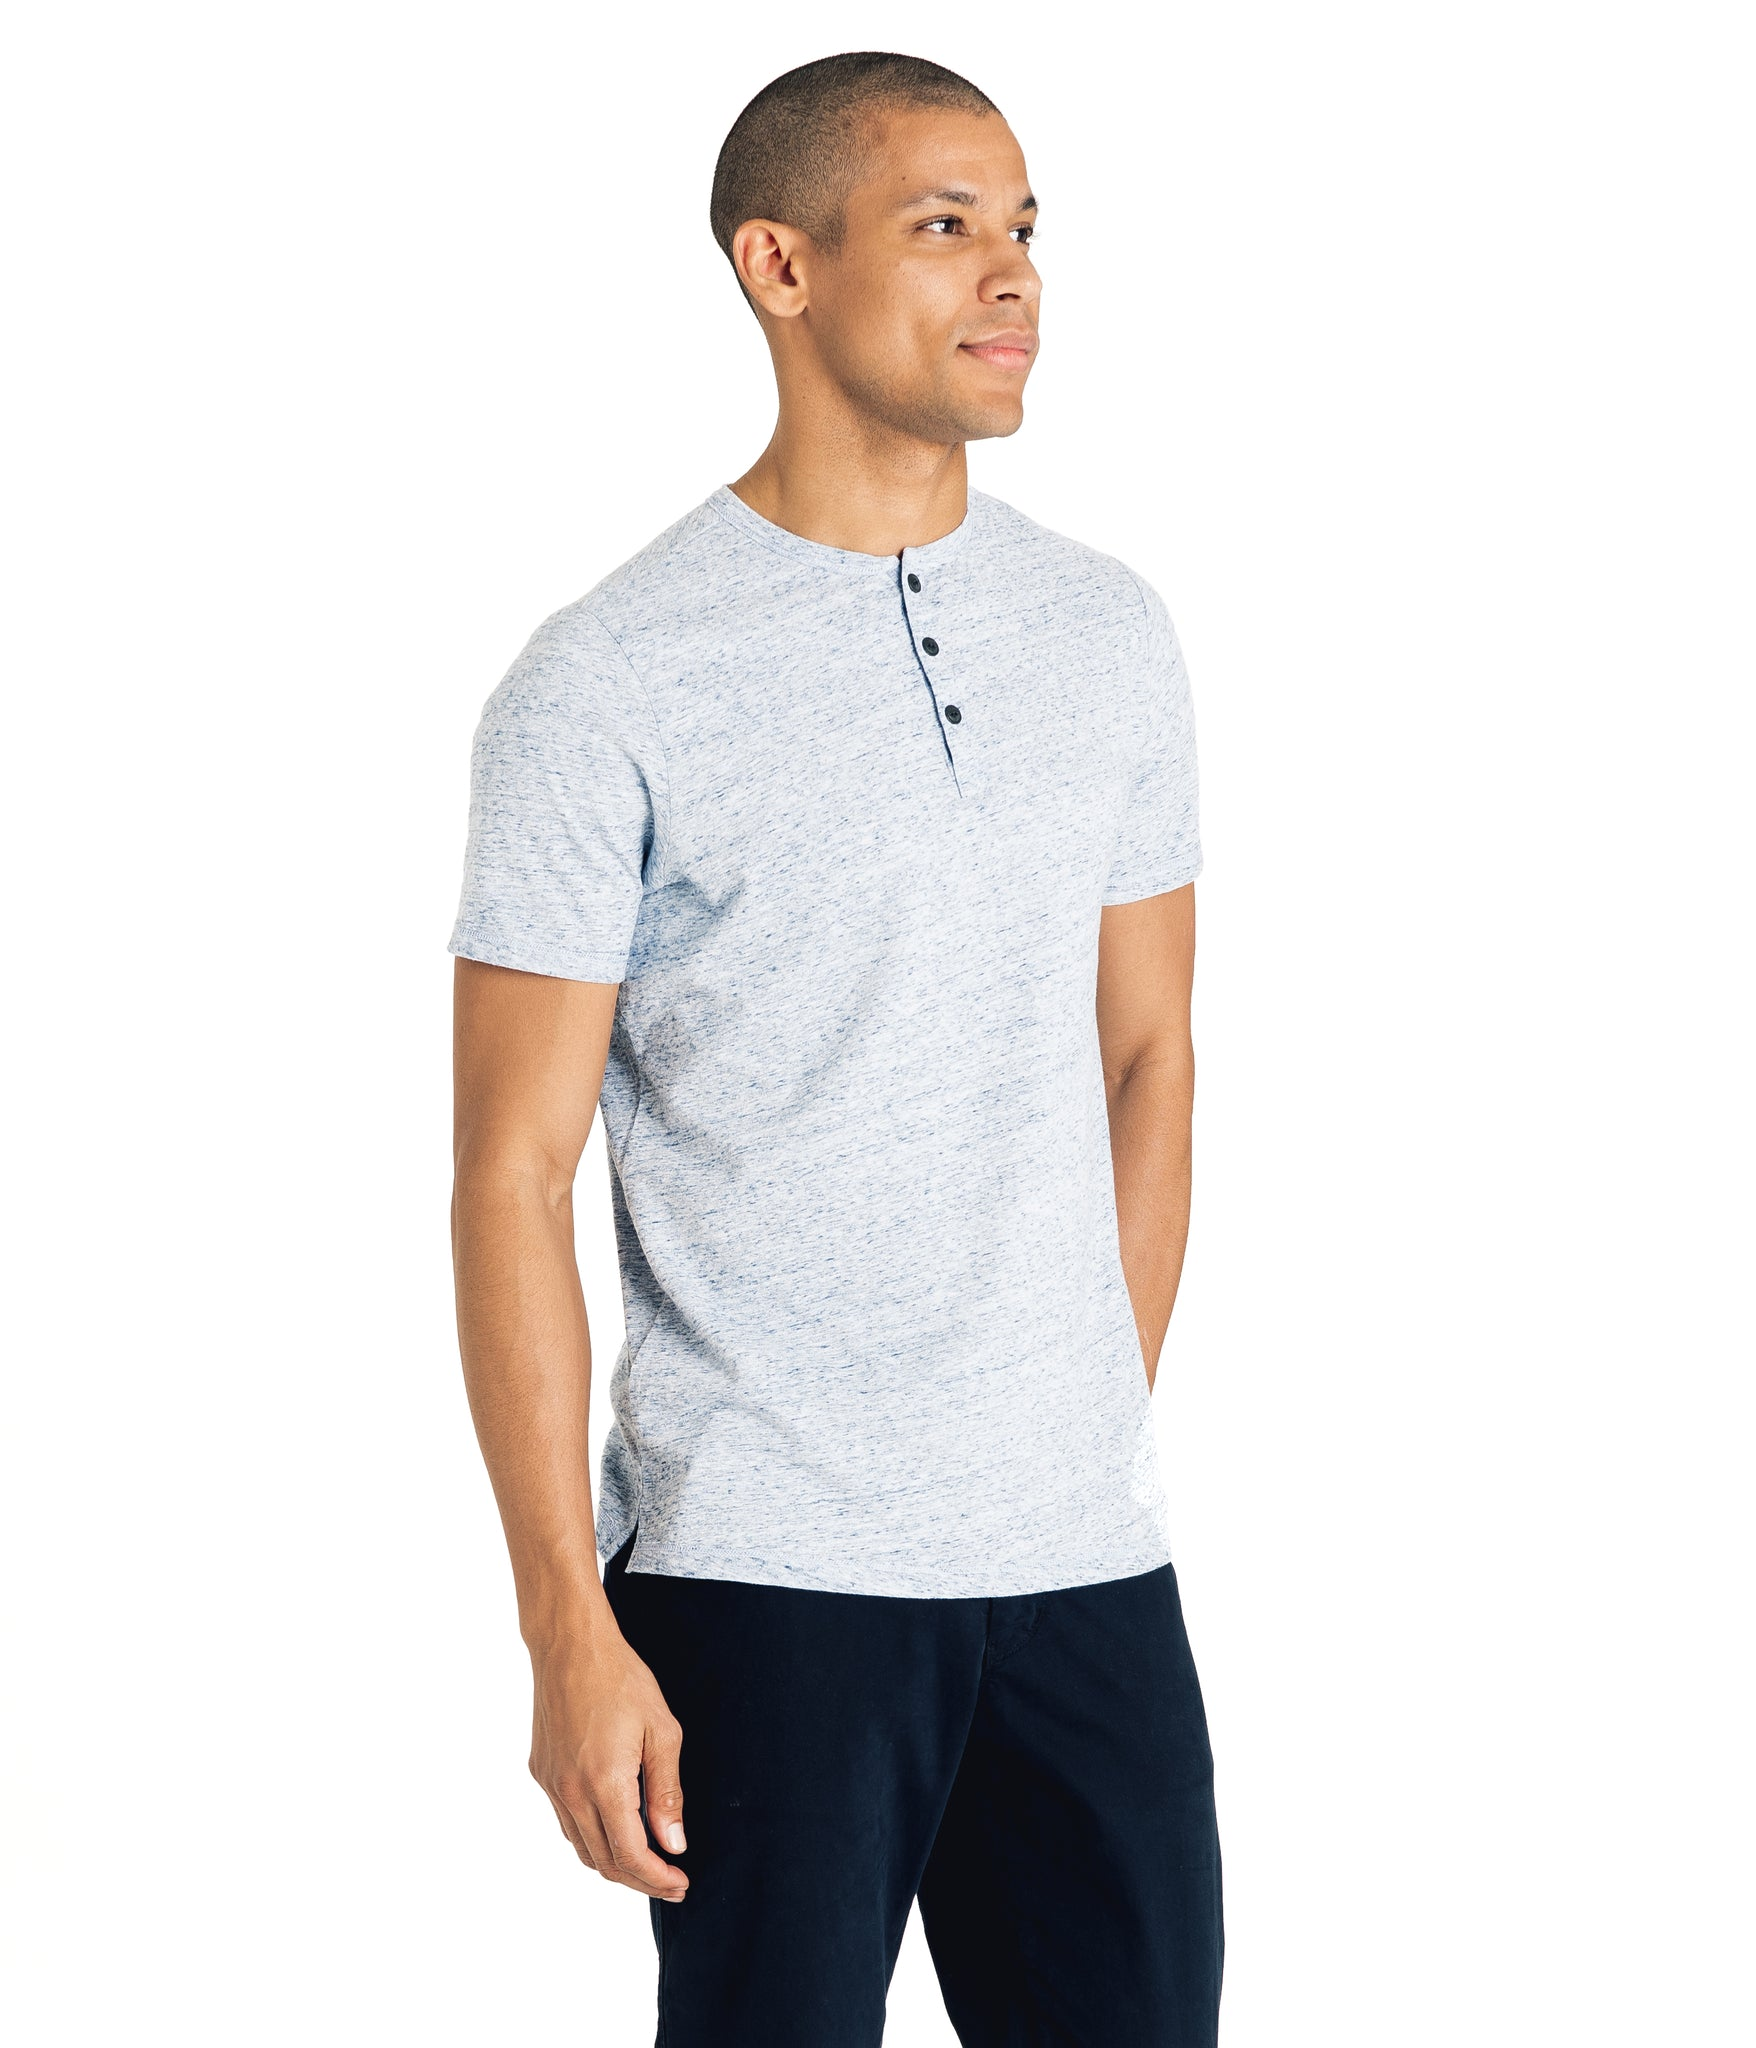 Henley - Soft Jersey - Blue Heather - Good Man Brand - Henley - Soft Jersey - Blue Heather